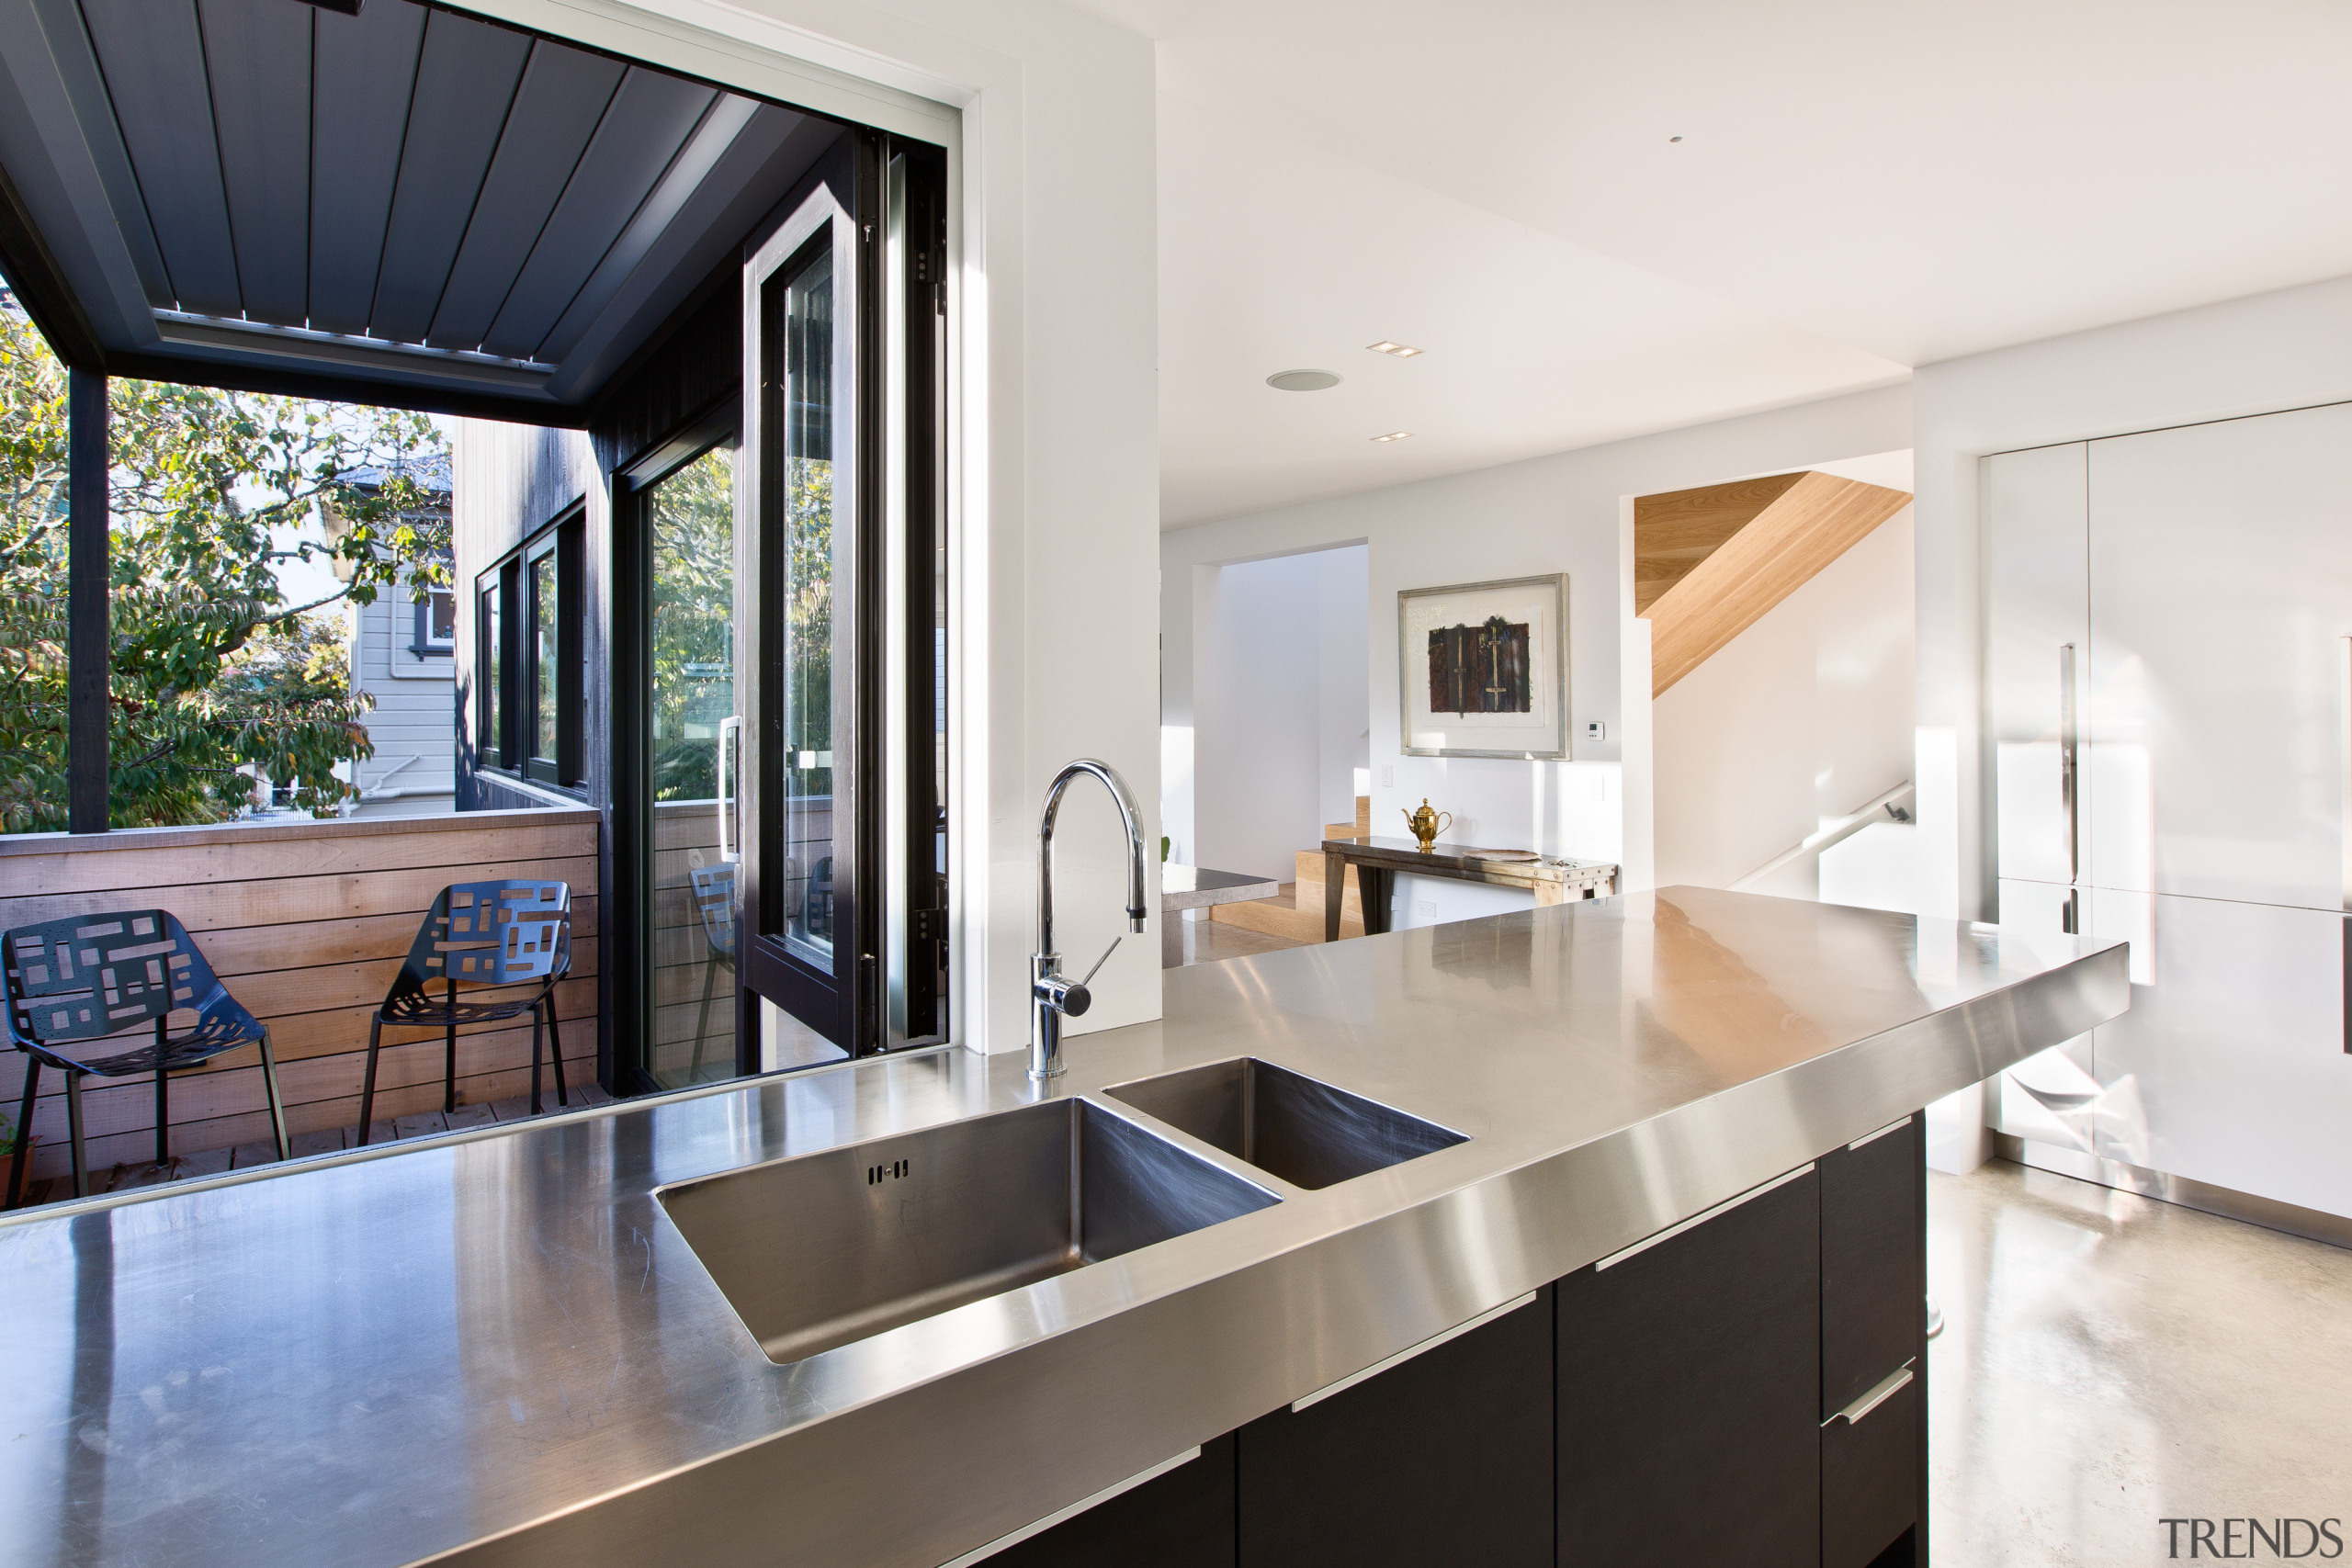 For this project, Milvia Hannah of German Kitchens architecture, countertop, house, interior design, kitchen, real estate, white